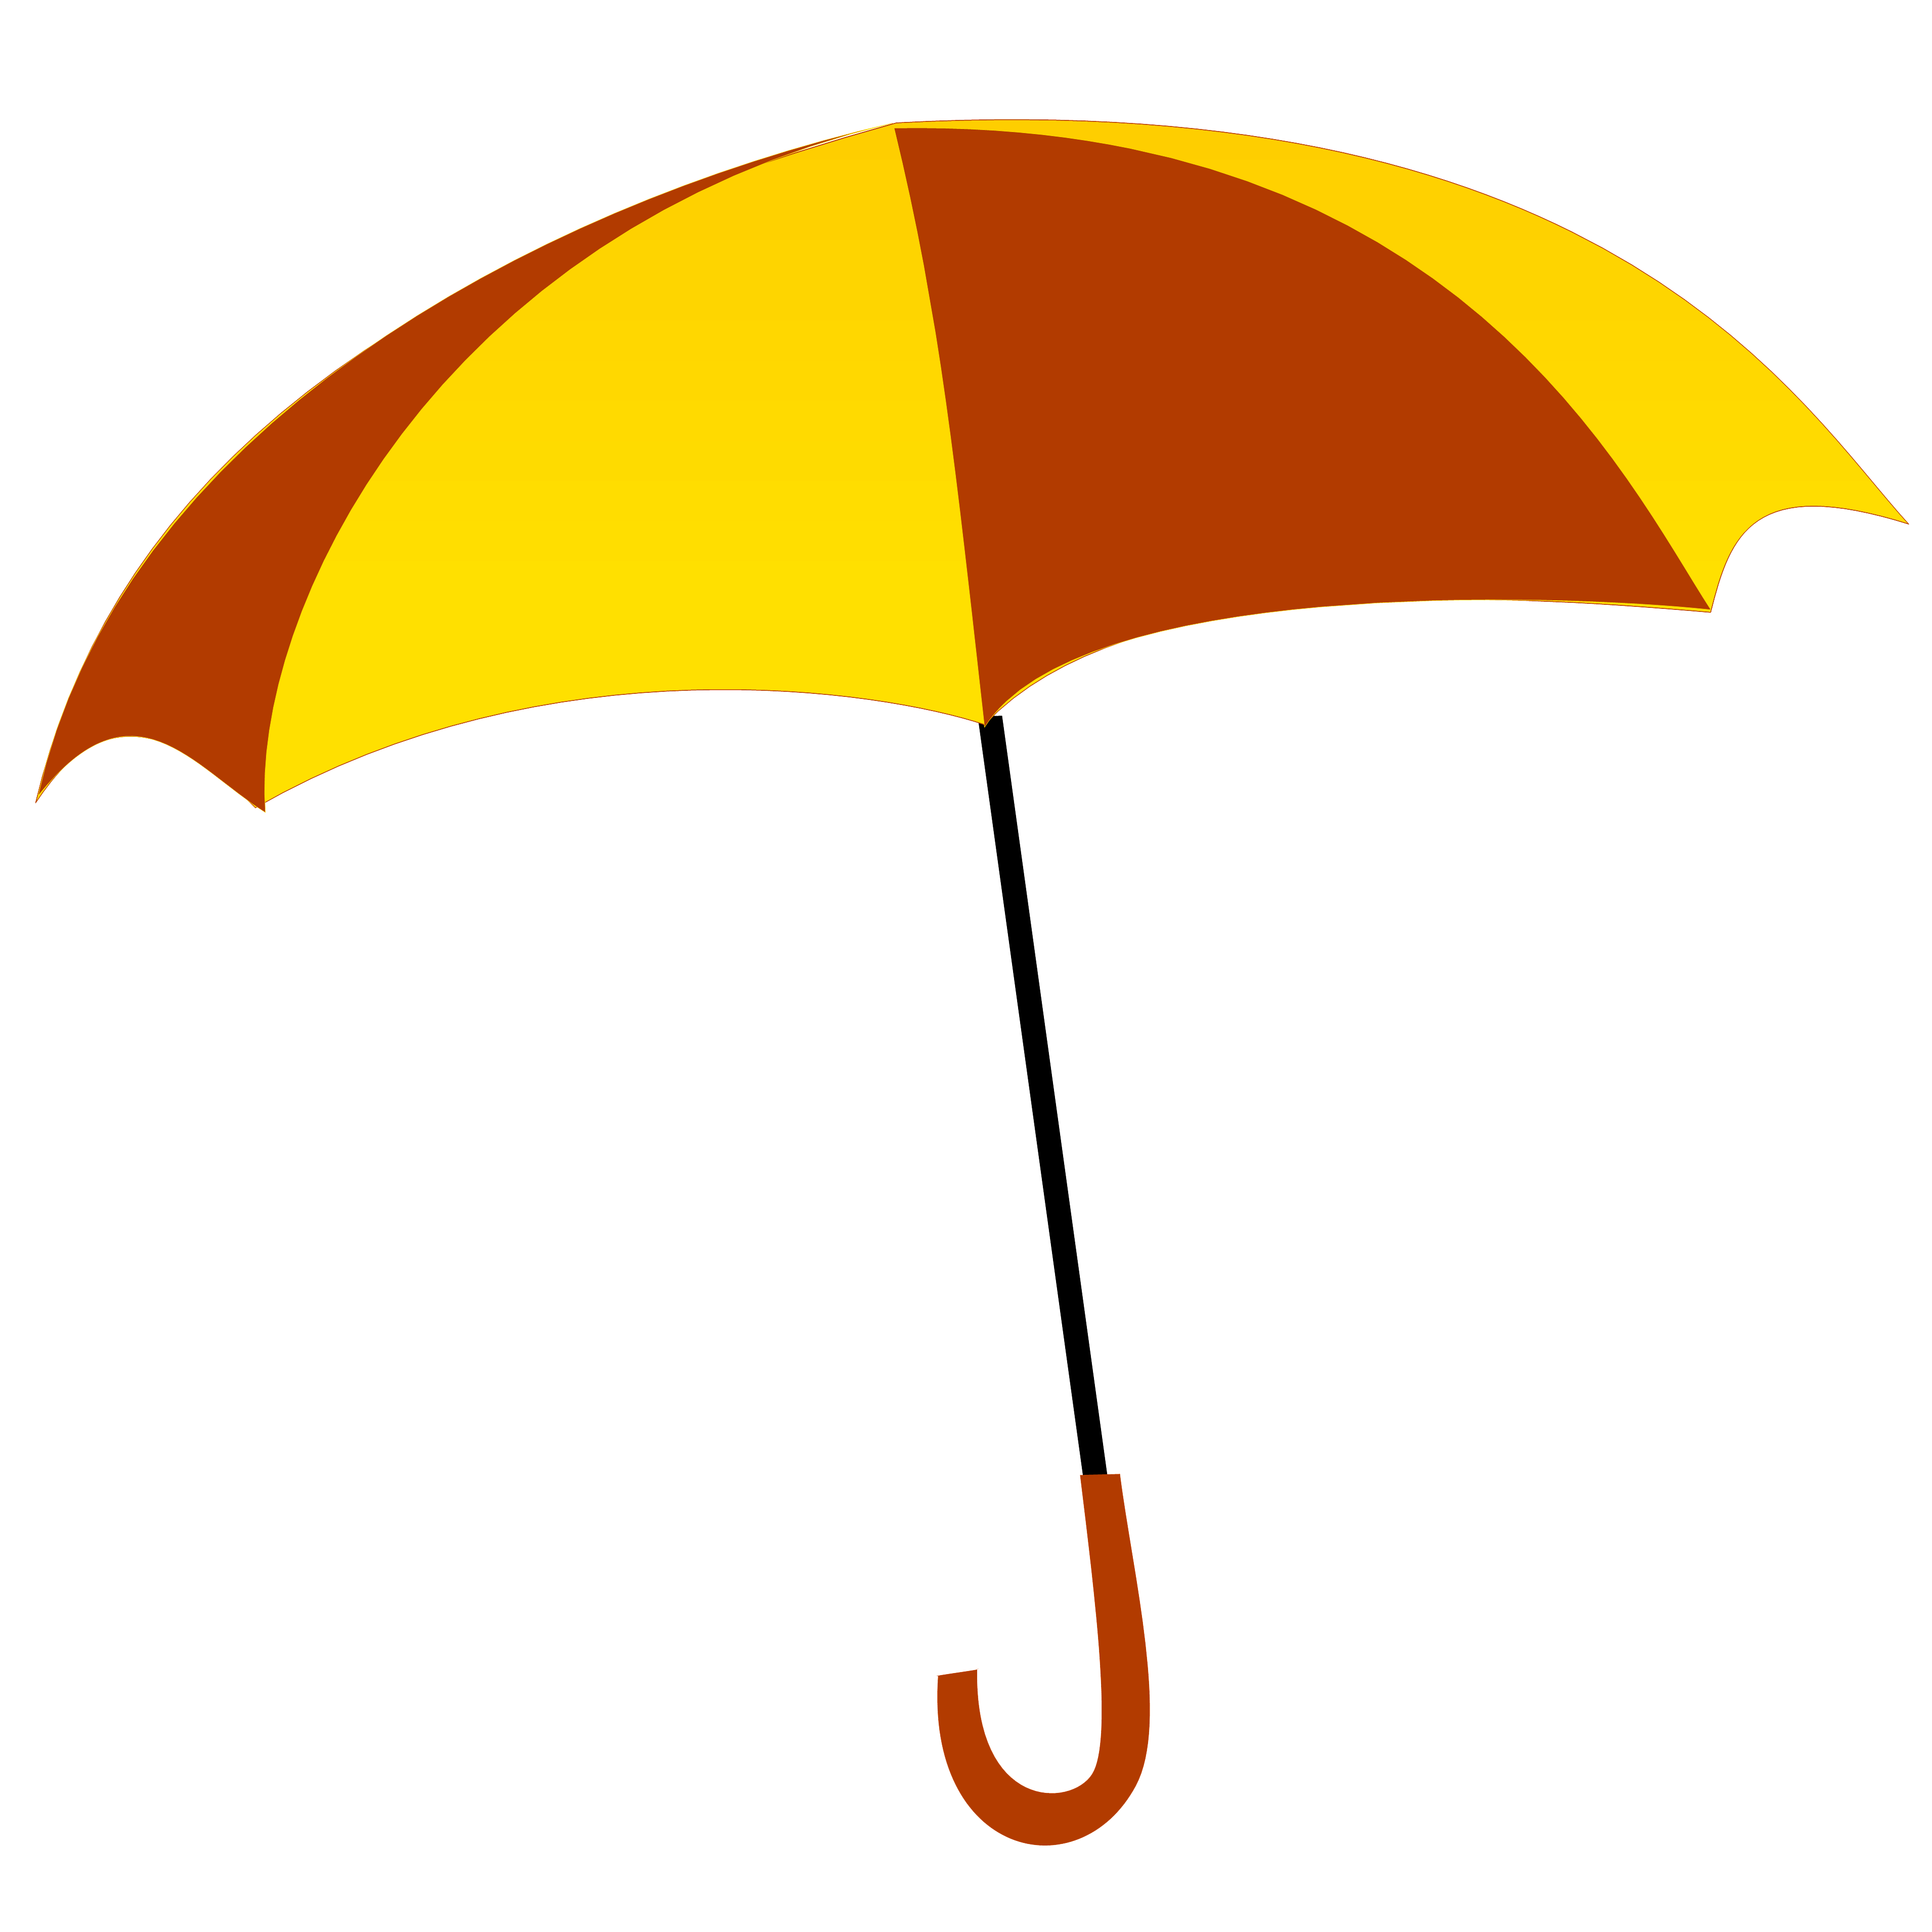 umbrella clipart png image purepng free transparent cc0 png rh purepng com umbrella clip art black and white umbrella clip art free download